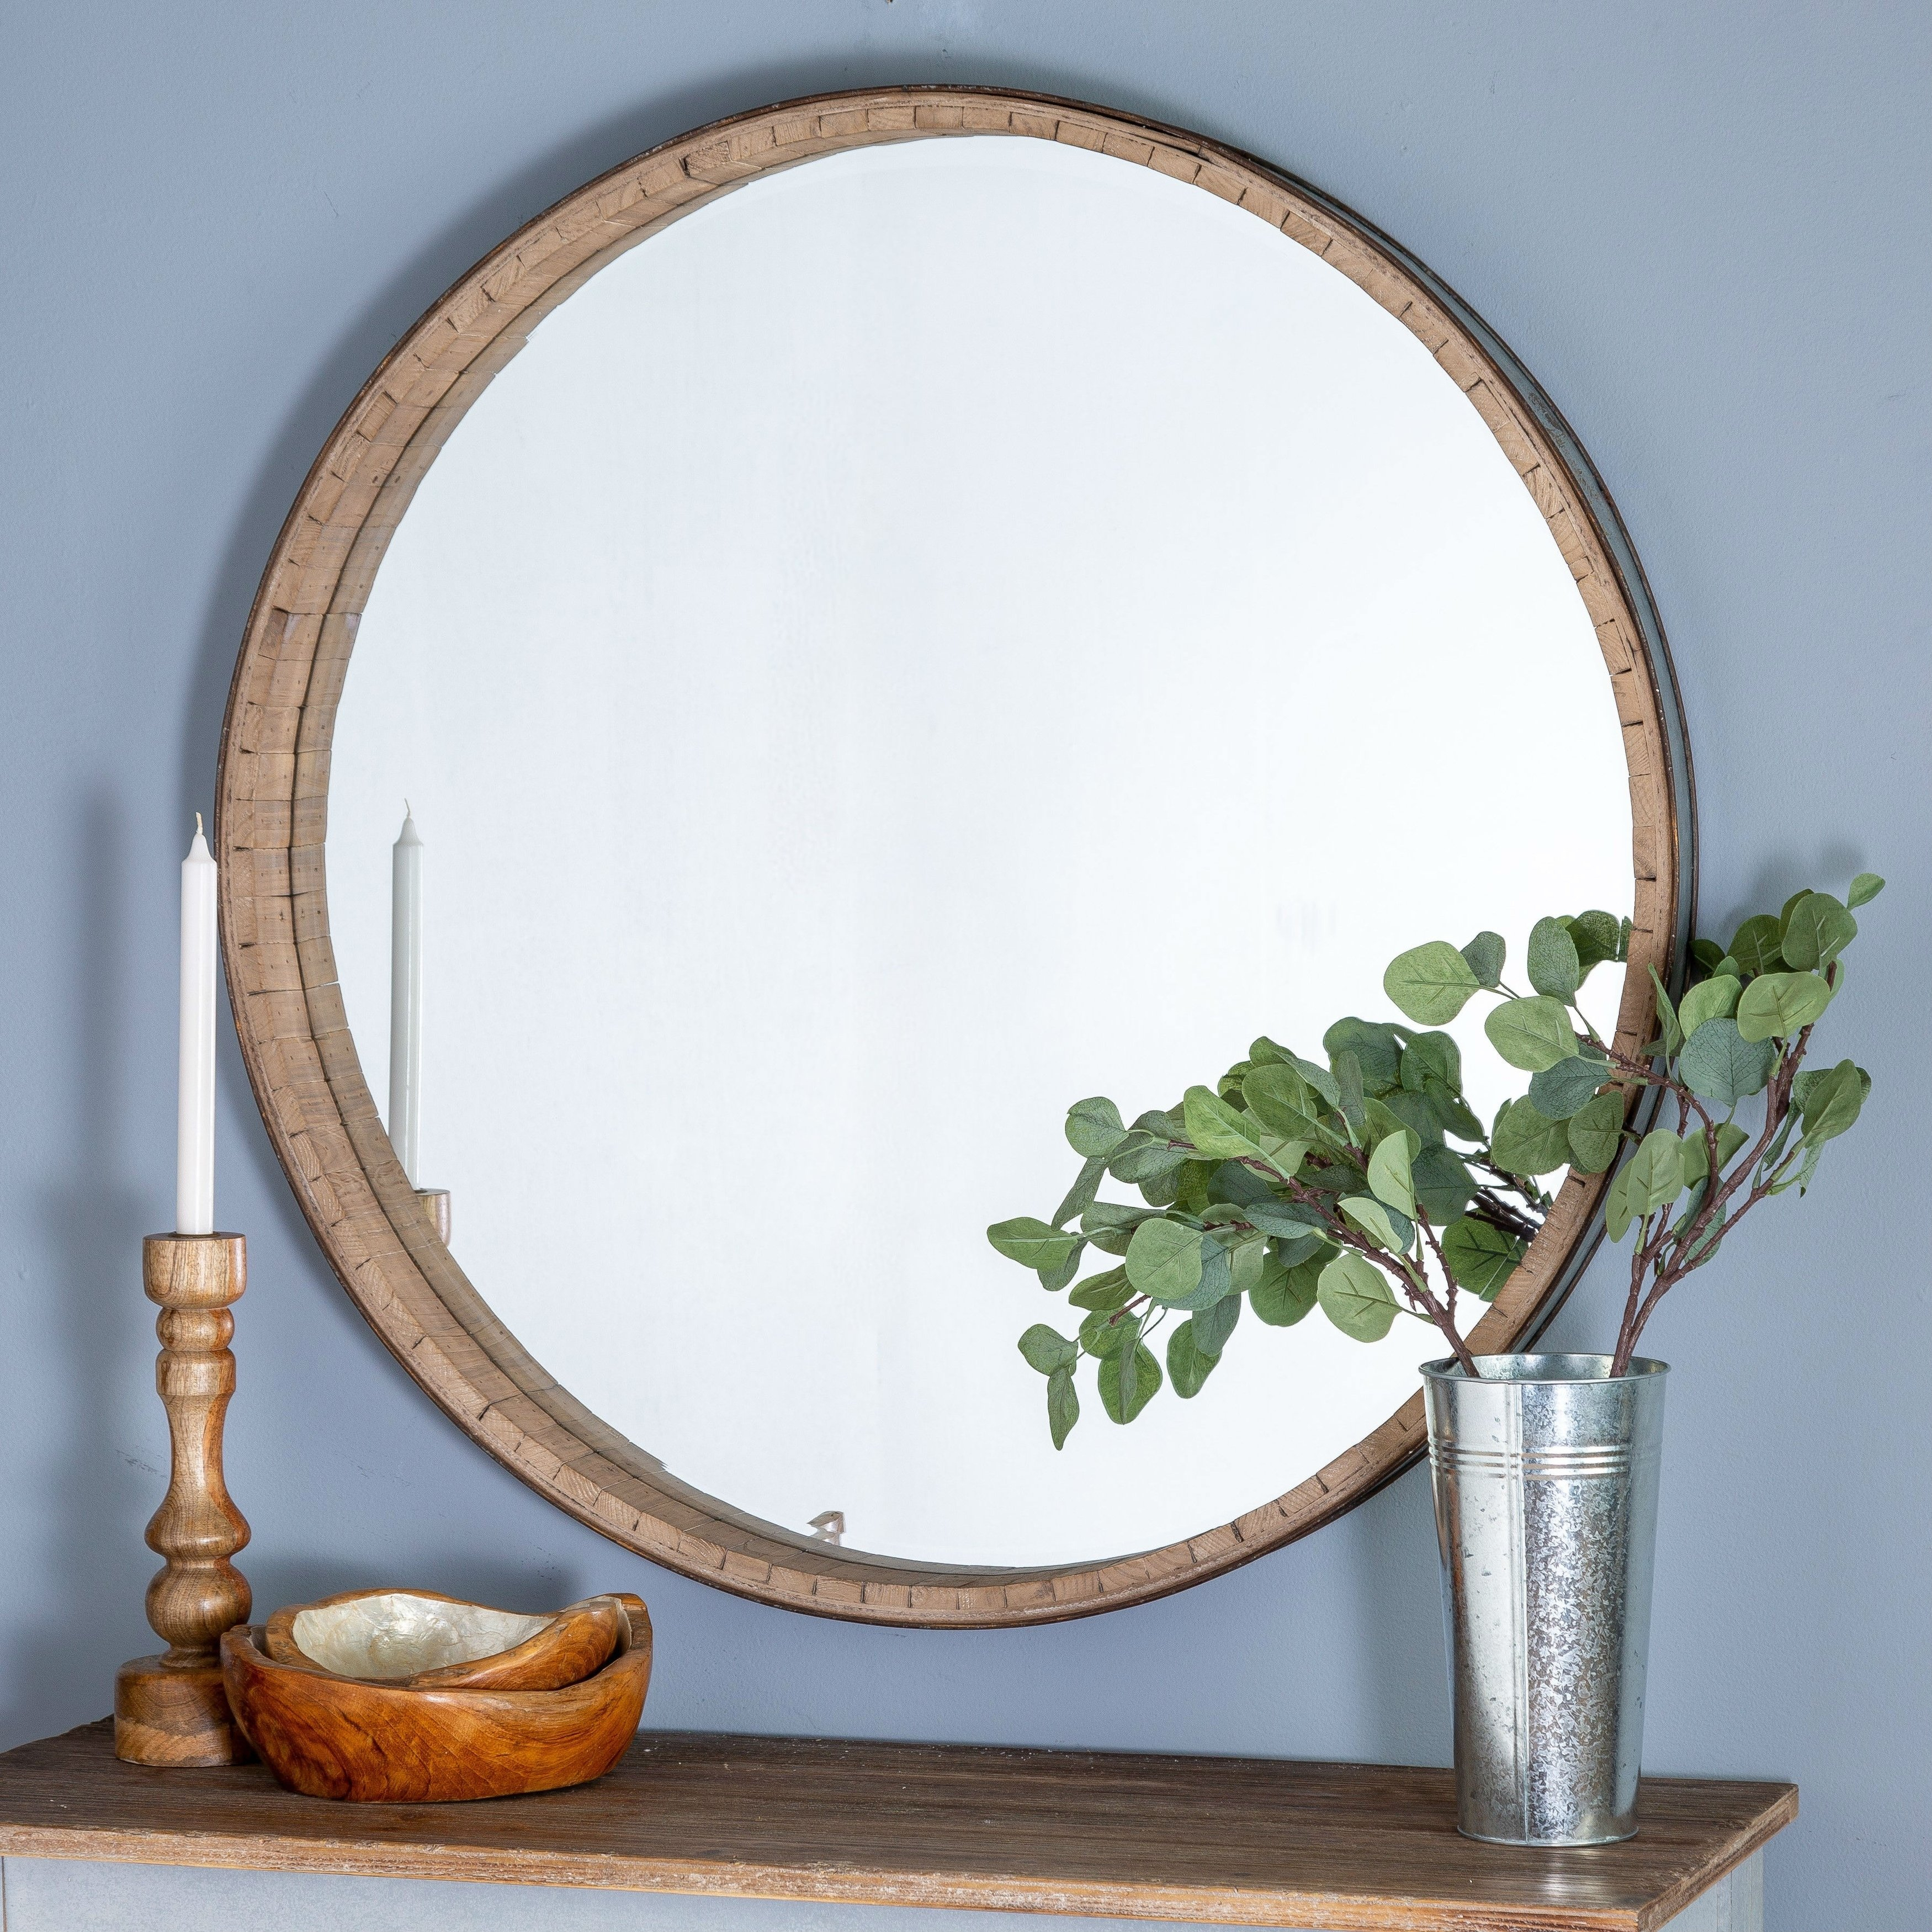 Brently Round Wood Wall Mirror – Brown | Products In 2019 Inside Arrigo Accent Mirrors (View 13 of 20)